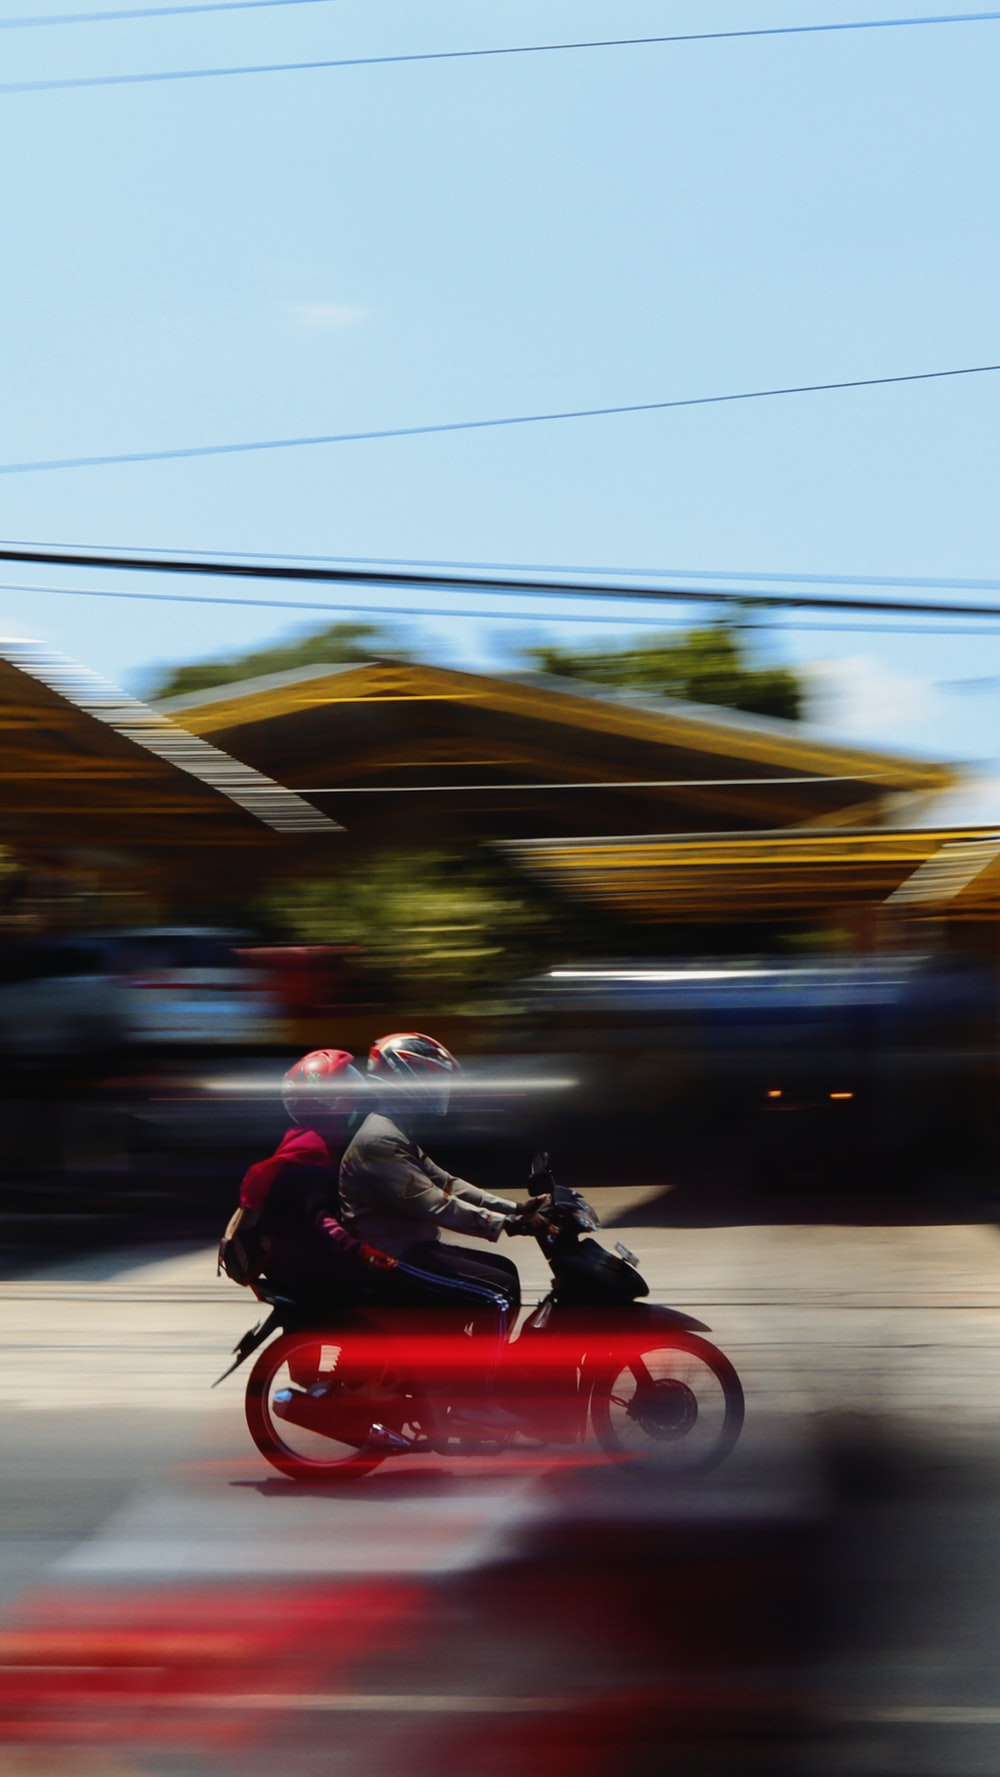 two people riding on motorcycle